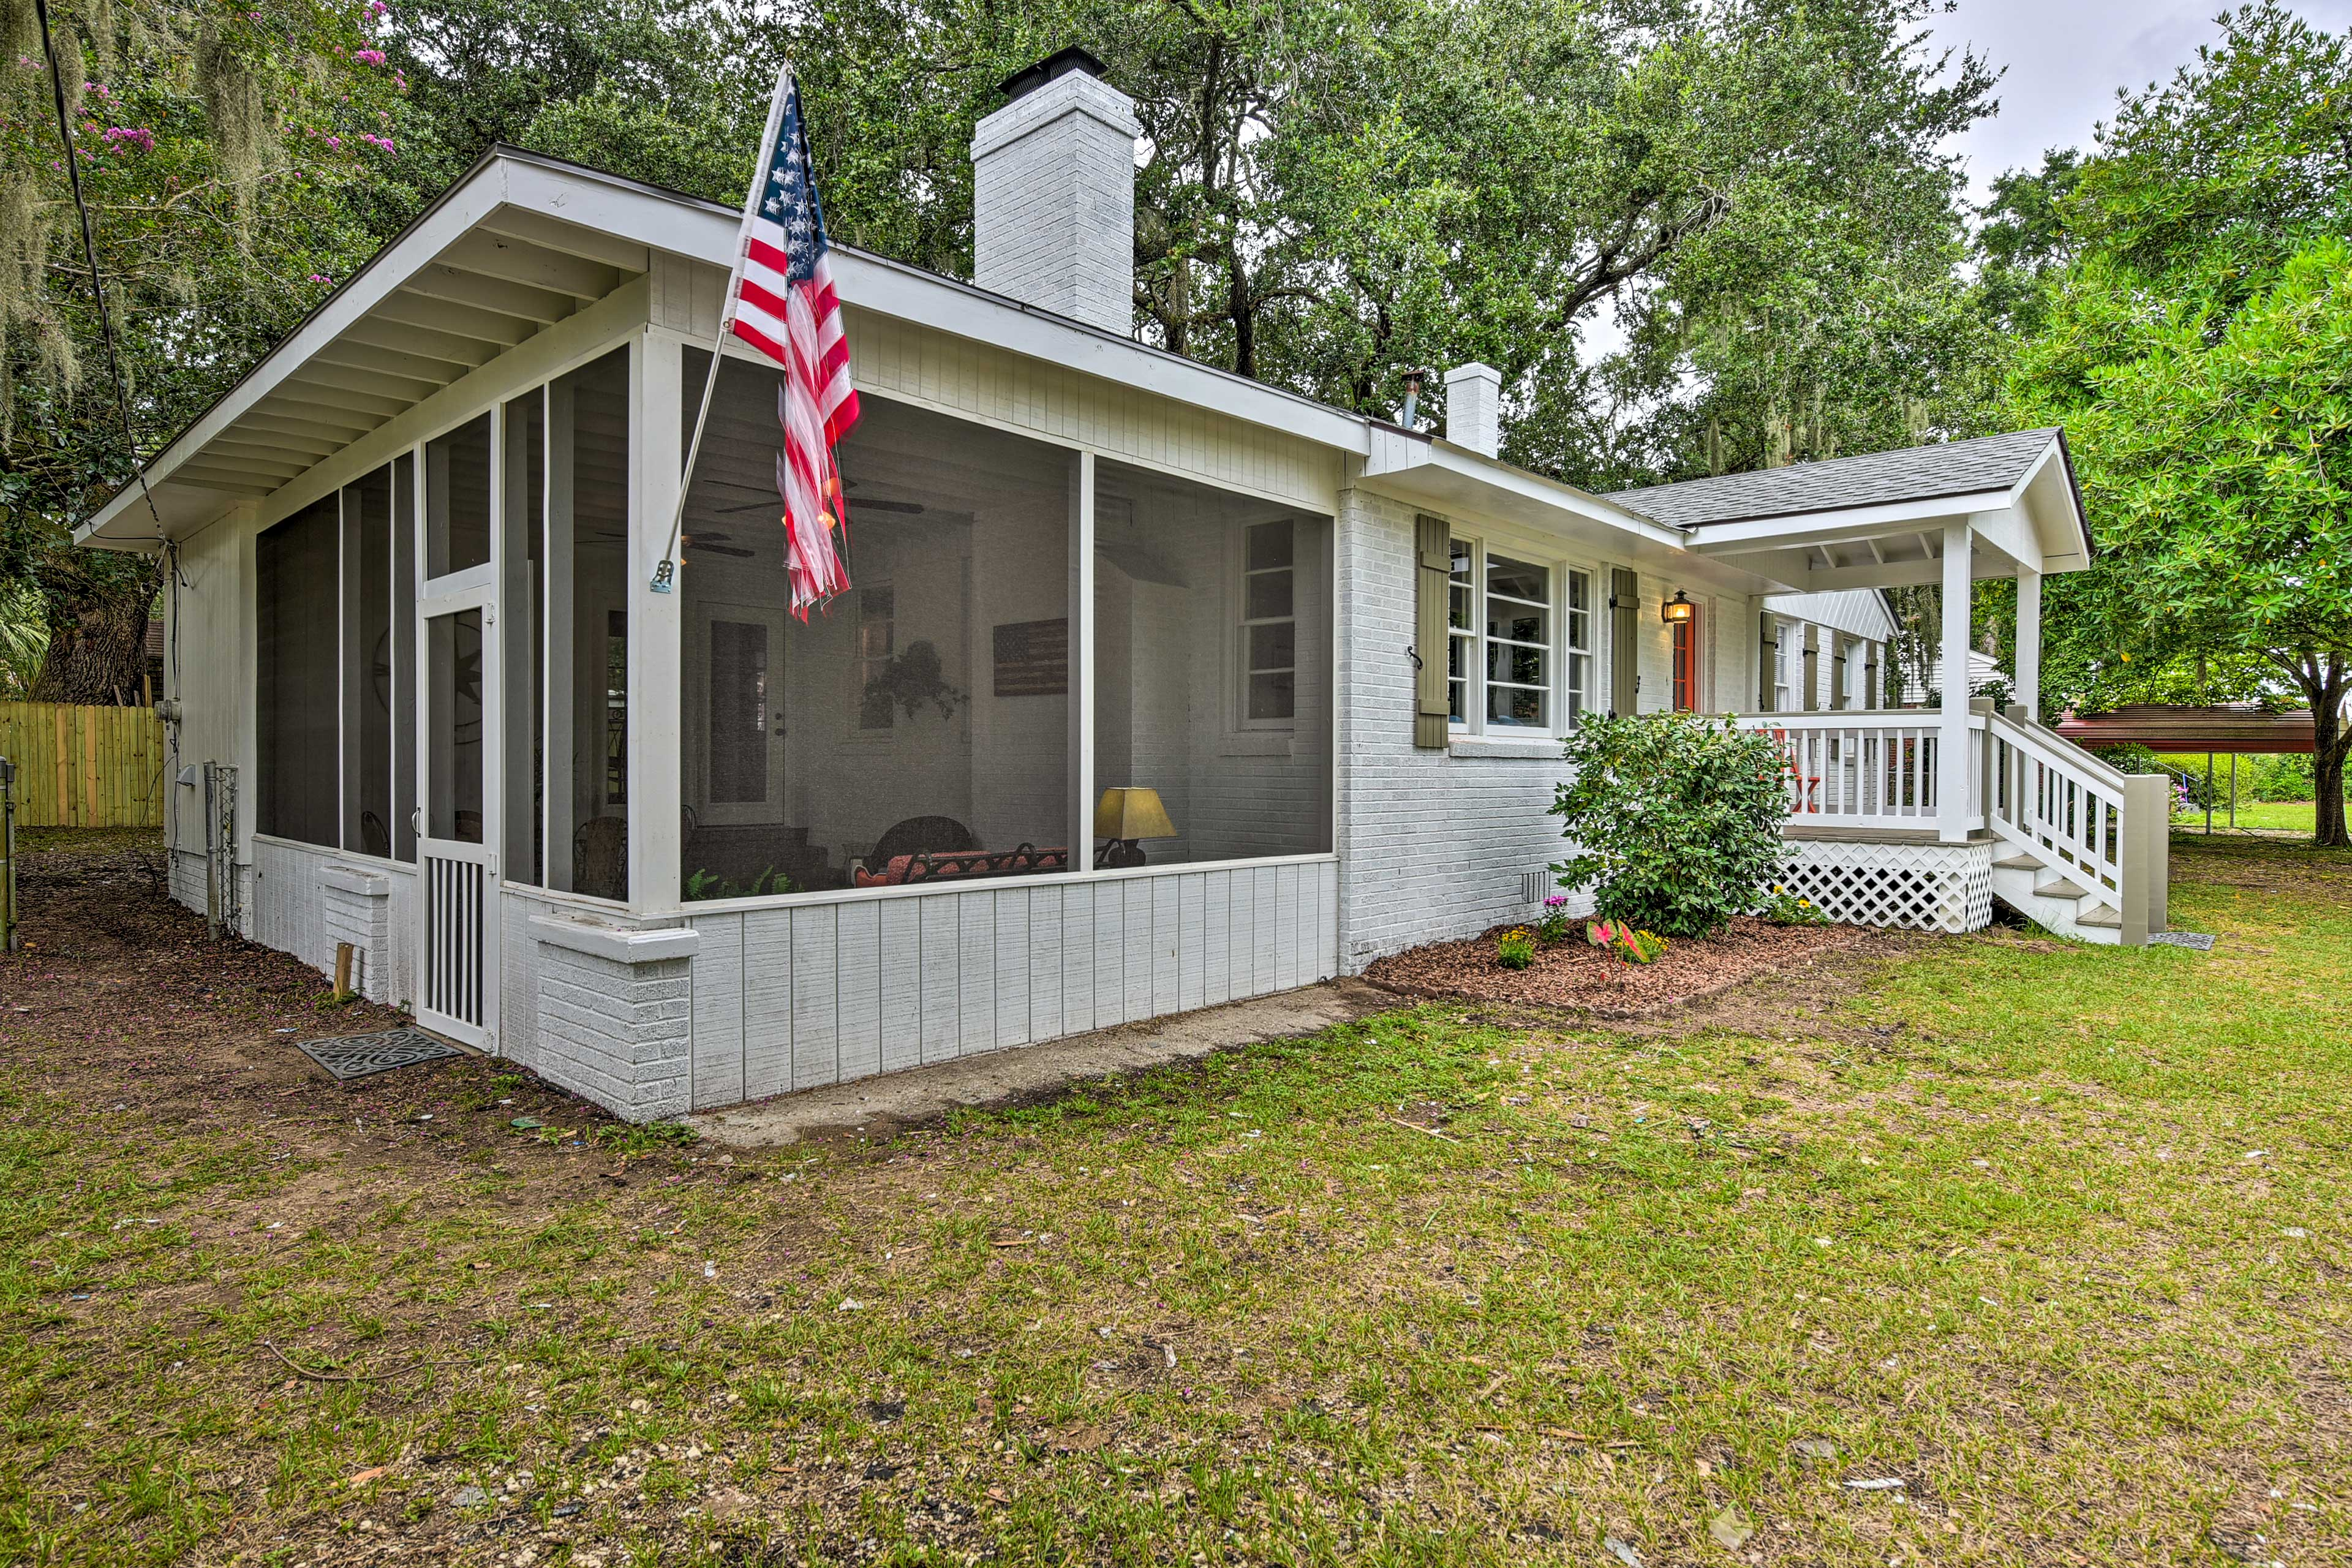 The screened-in porch can be used as a second entrance to the home.